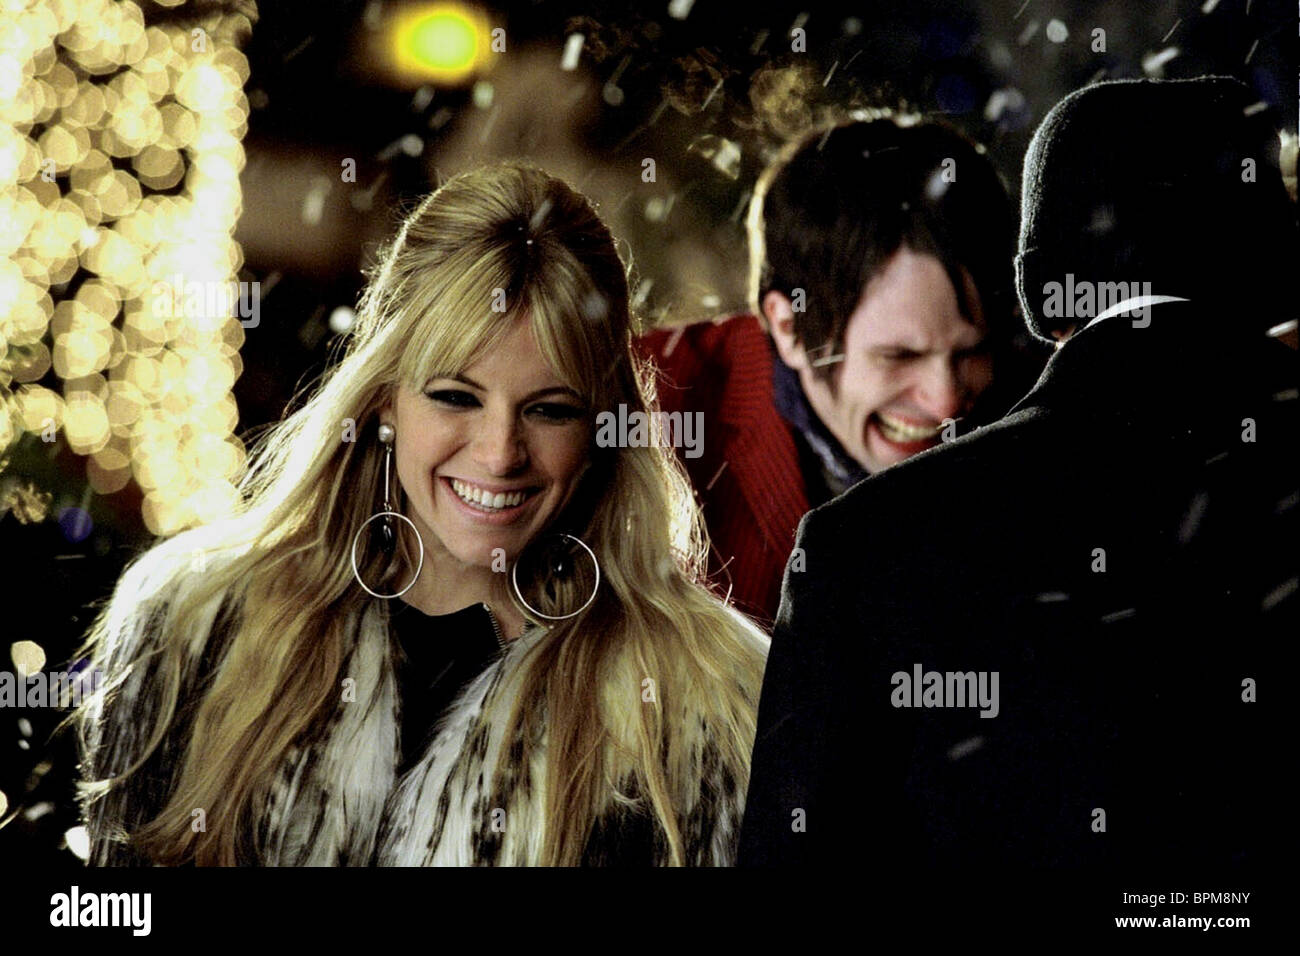 SIENNA MILLER WHAT'S IT ALL ABOUT ALFIE? (2004) - Stock Image